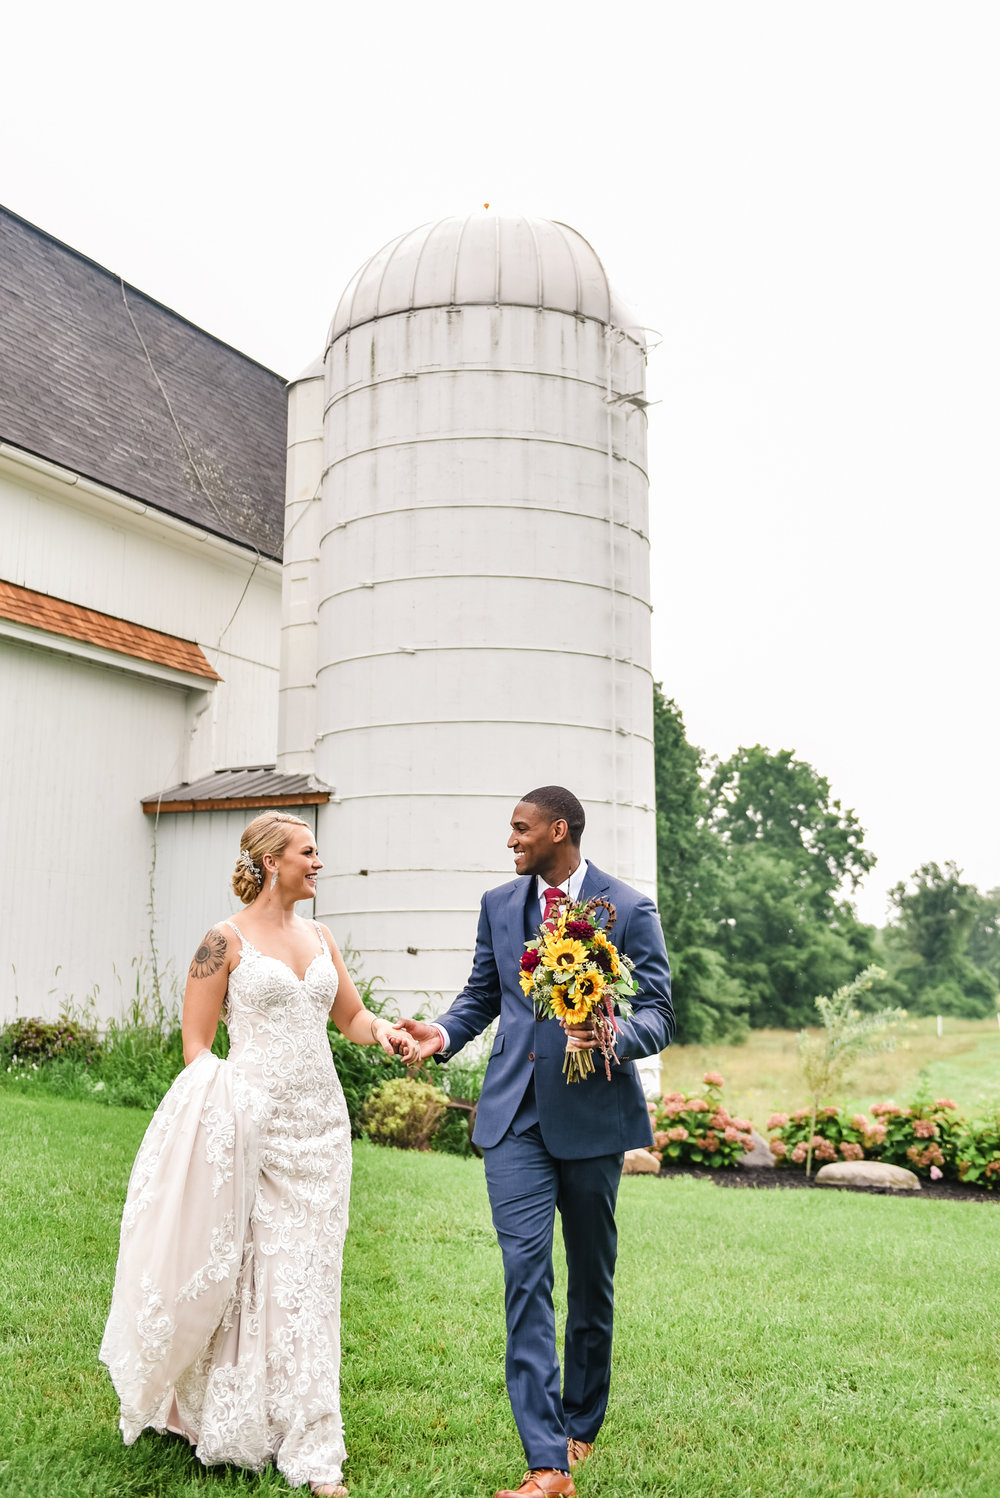 Cobblestone_Wedding_Barn_Rochester_Wedding_JILL_STUDIO_Rochester_NY_Photographer_DSC_7447.jpg